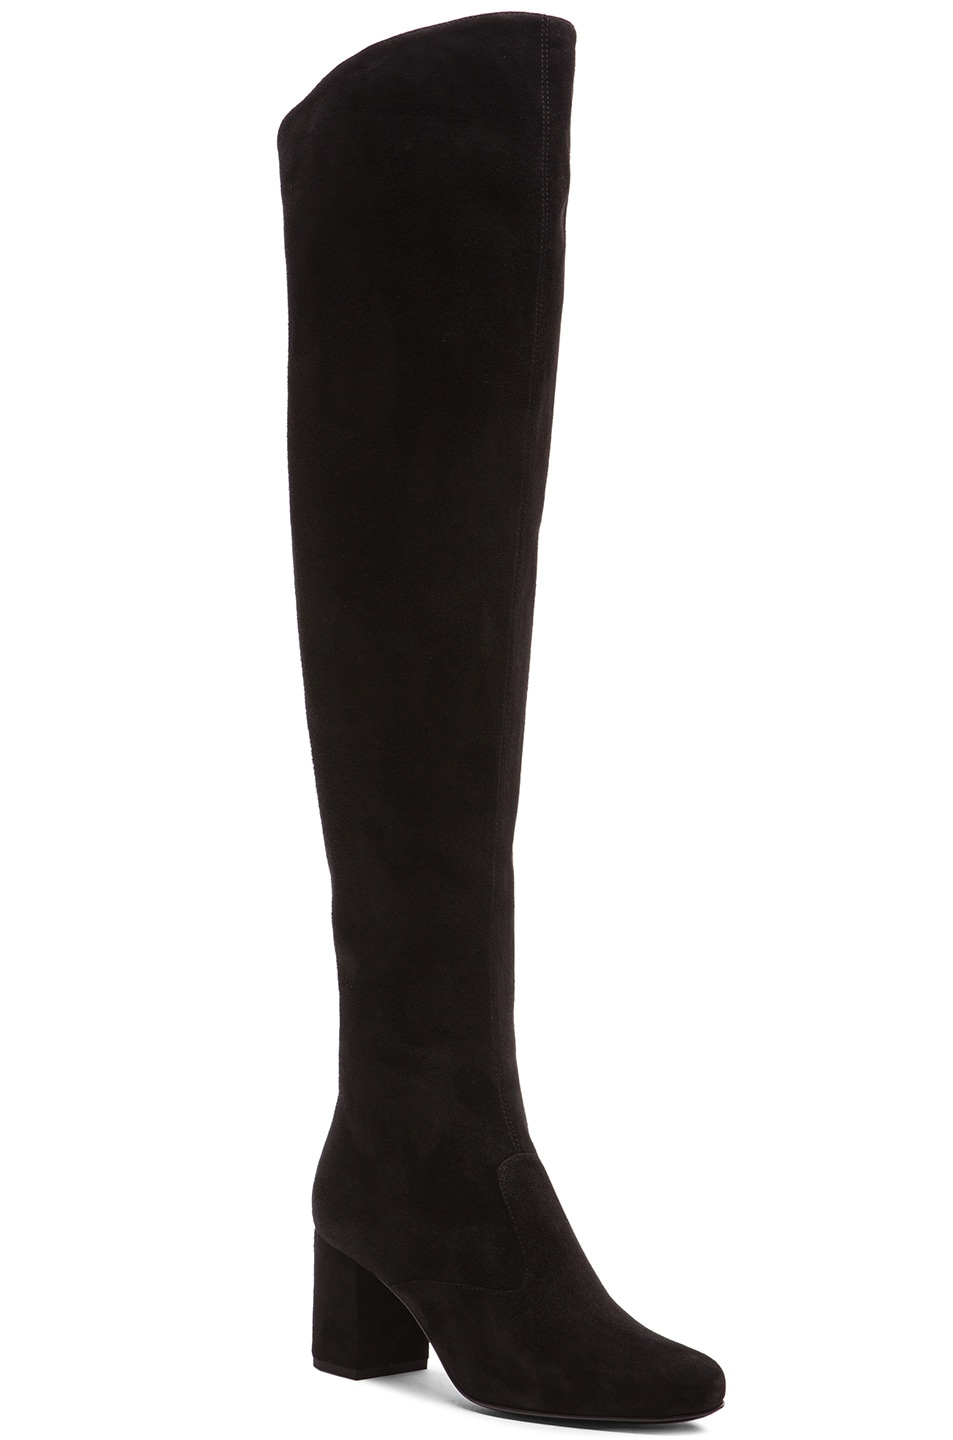 Image 2 of Saint Laurent Suede BB Thigh High Boots in Black